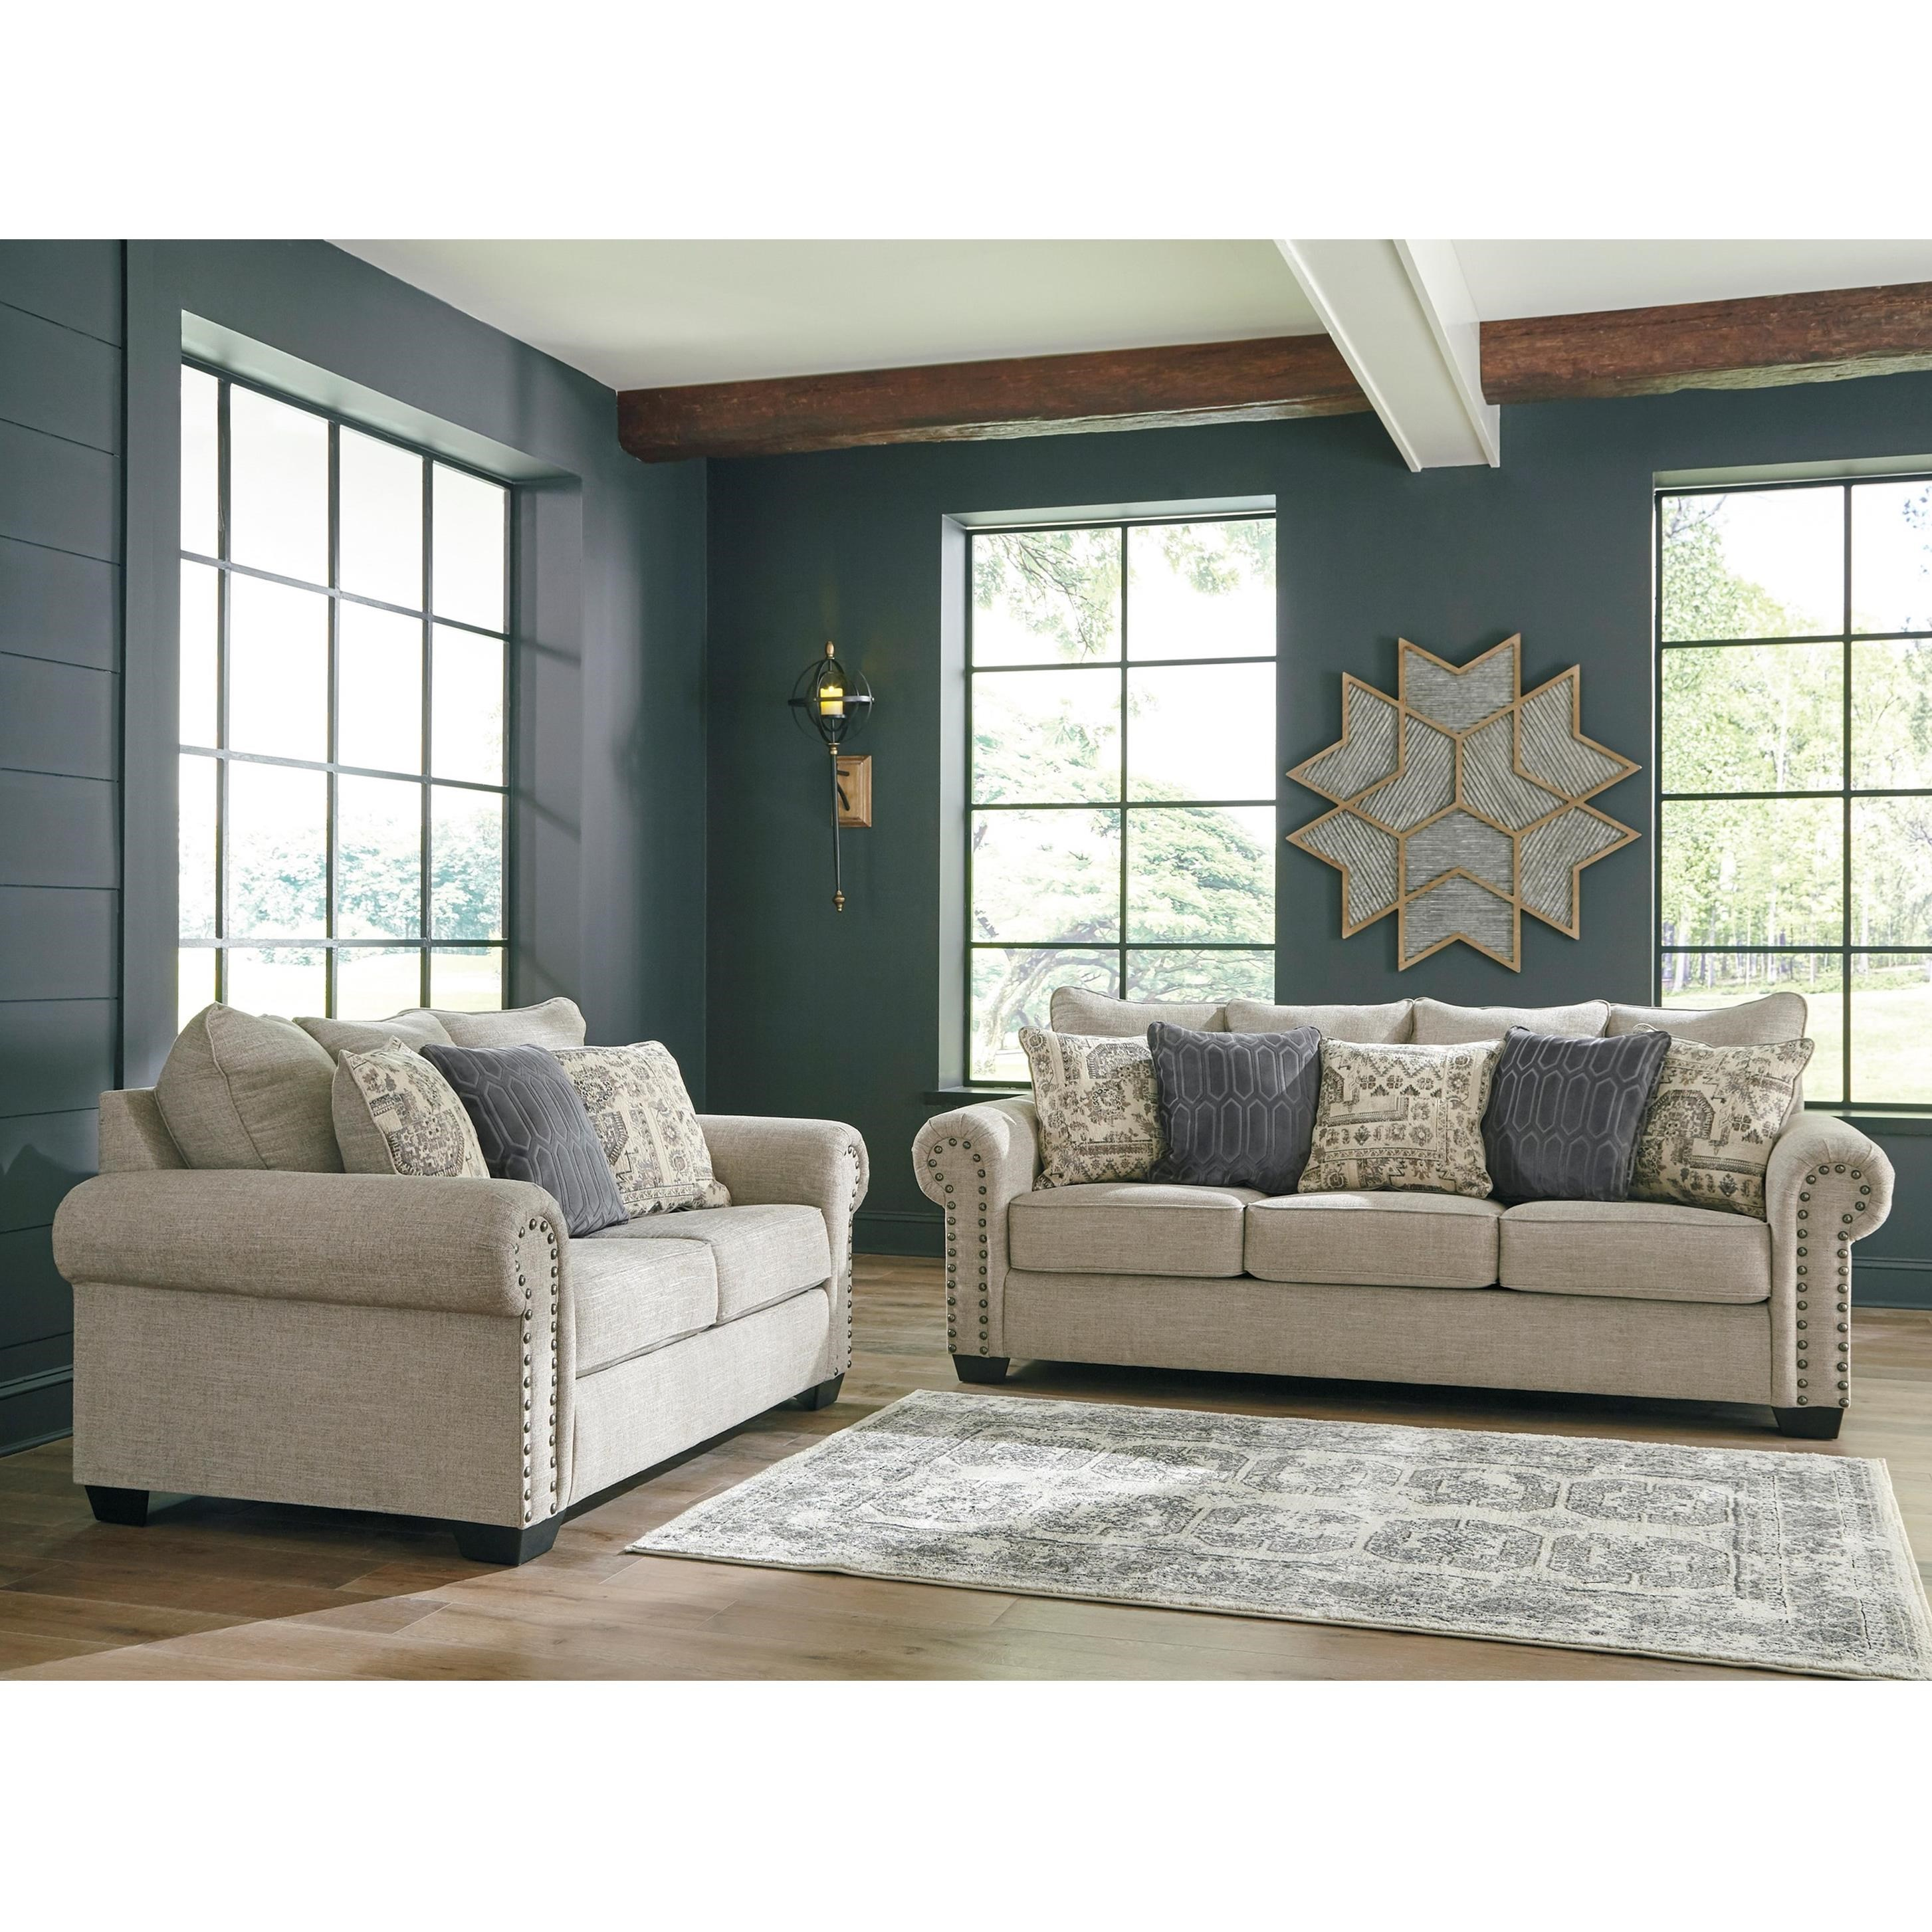 Zarina Stationary Living Room Group by Signature Design by Ashley at Factory Direct Furniture